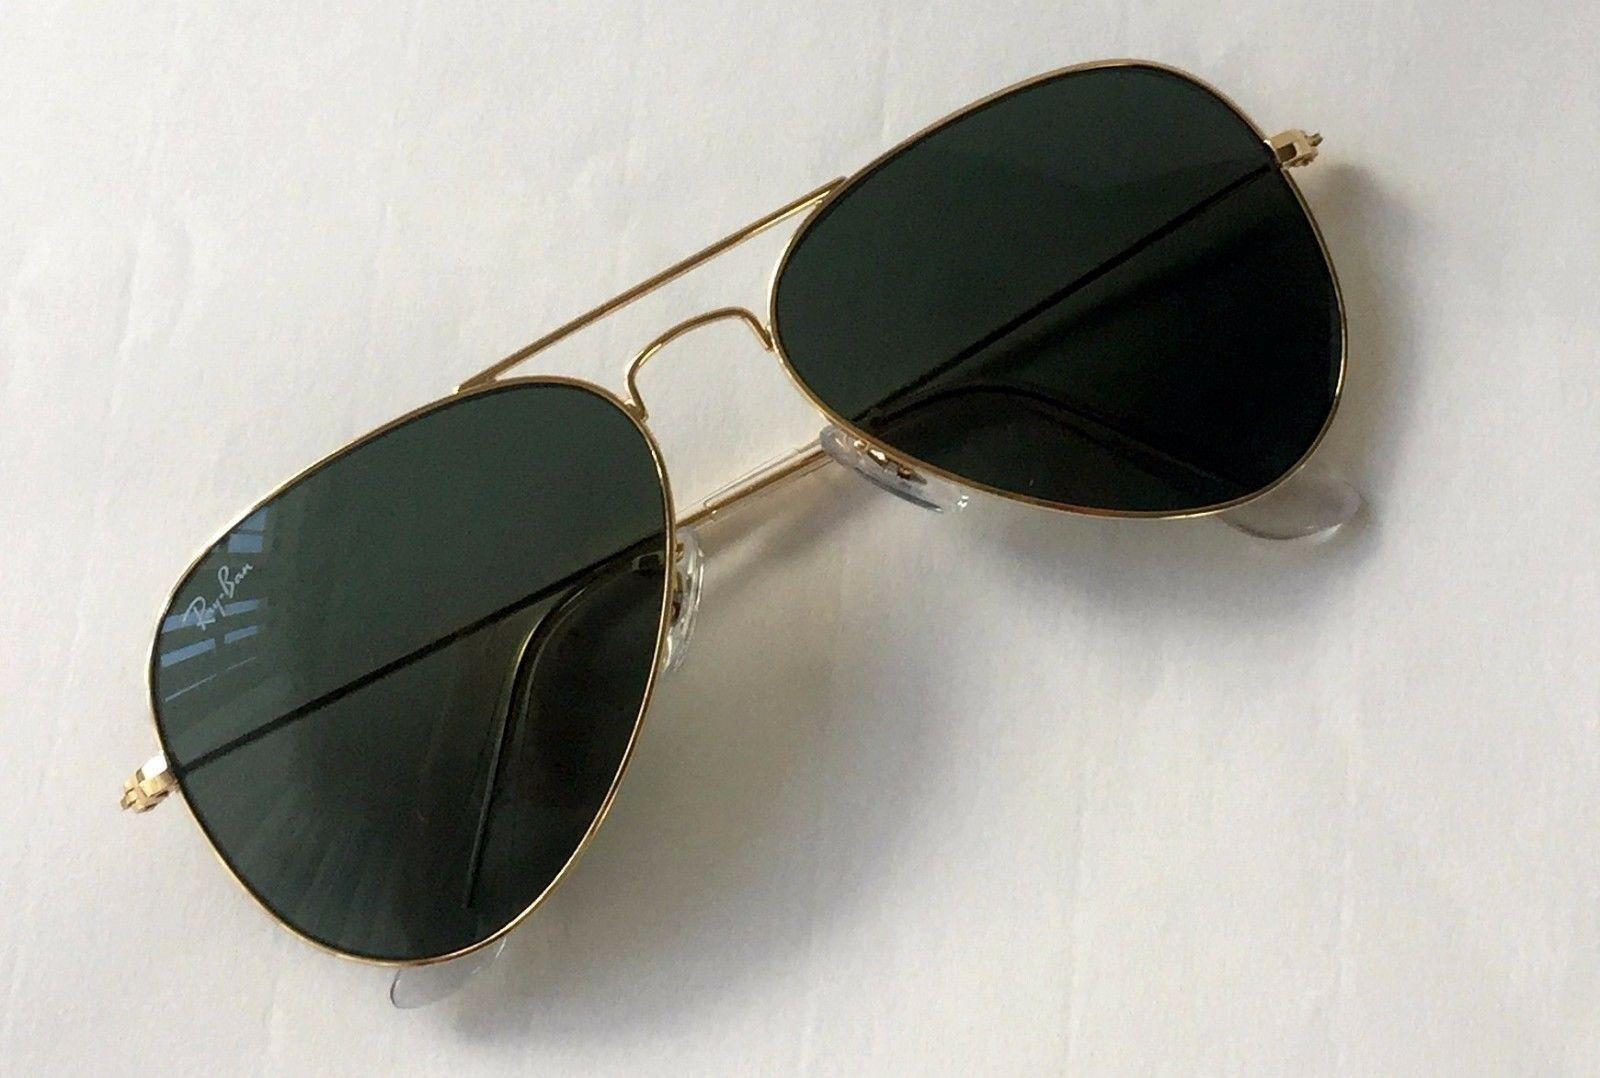 736bc730897 ... Large Metal UPC 805289628460 product image for Ray Ban Aviator Rb3026  L2846 Gold Frame G15 Green Lens 62mm ...